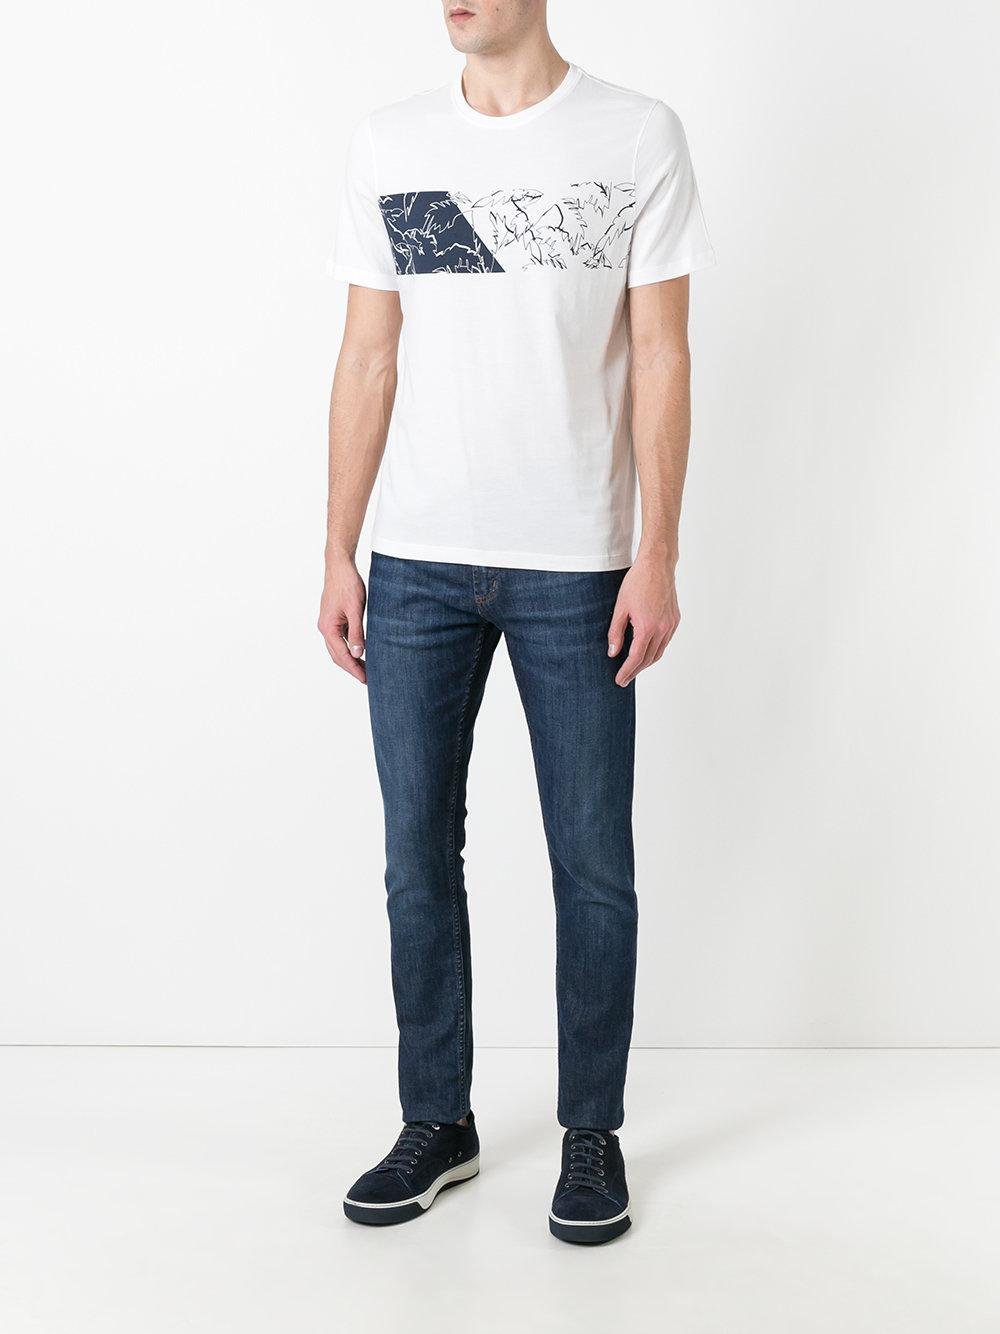 Lyst michael michael kors leaf print t shirt in white for Michael kors mens shirts sale